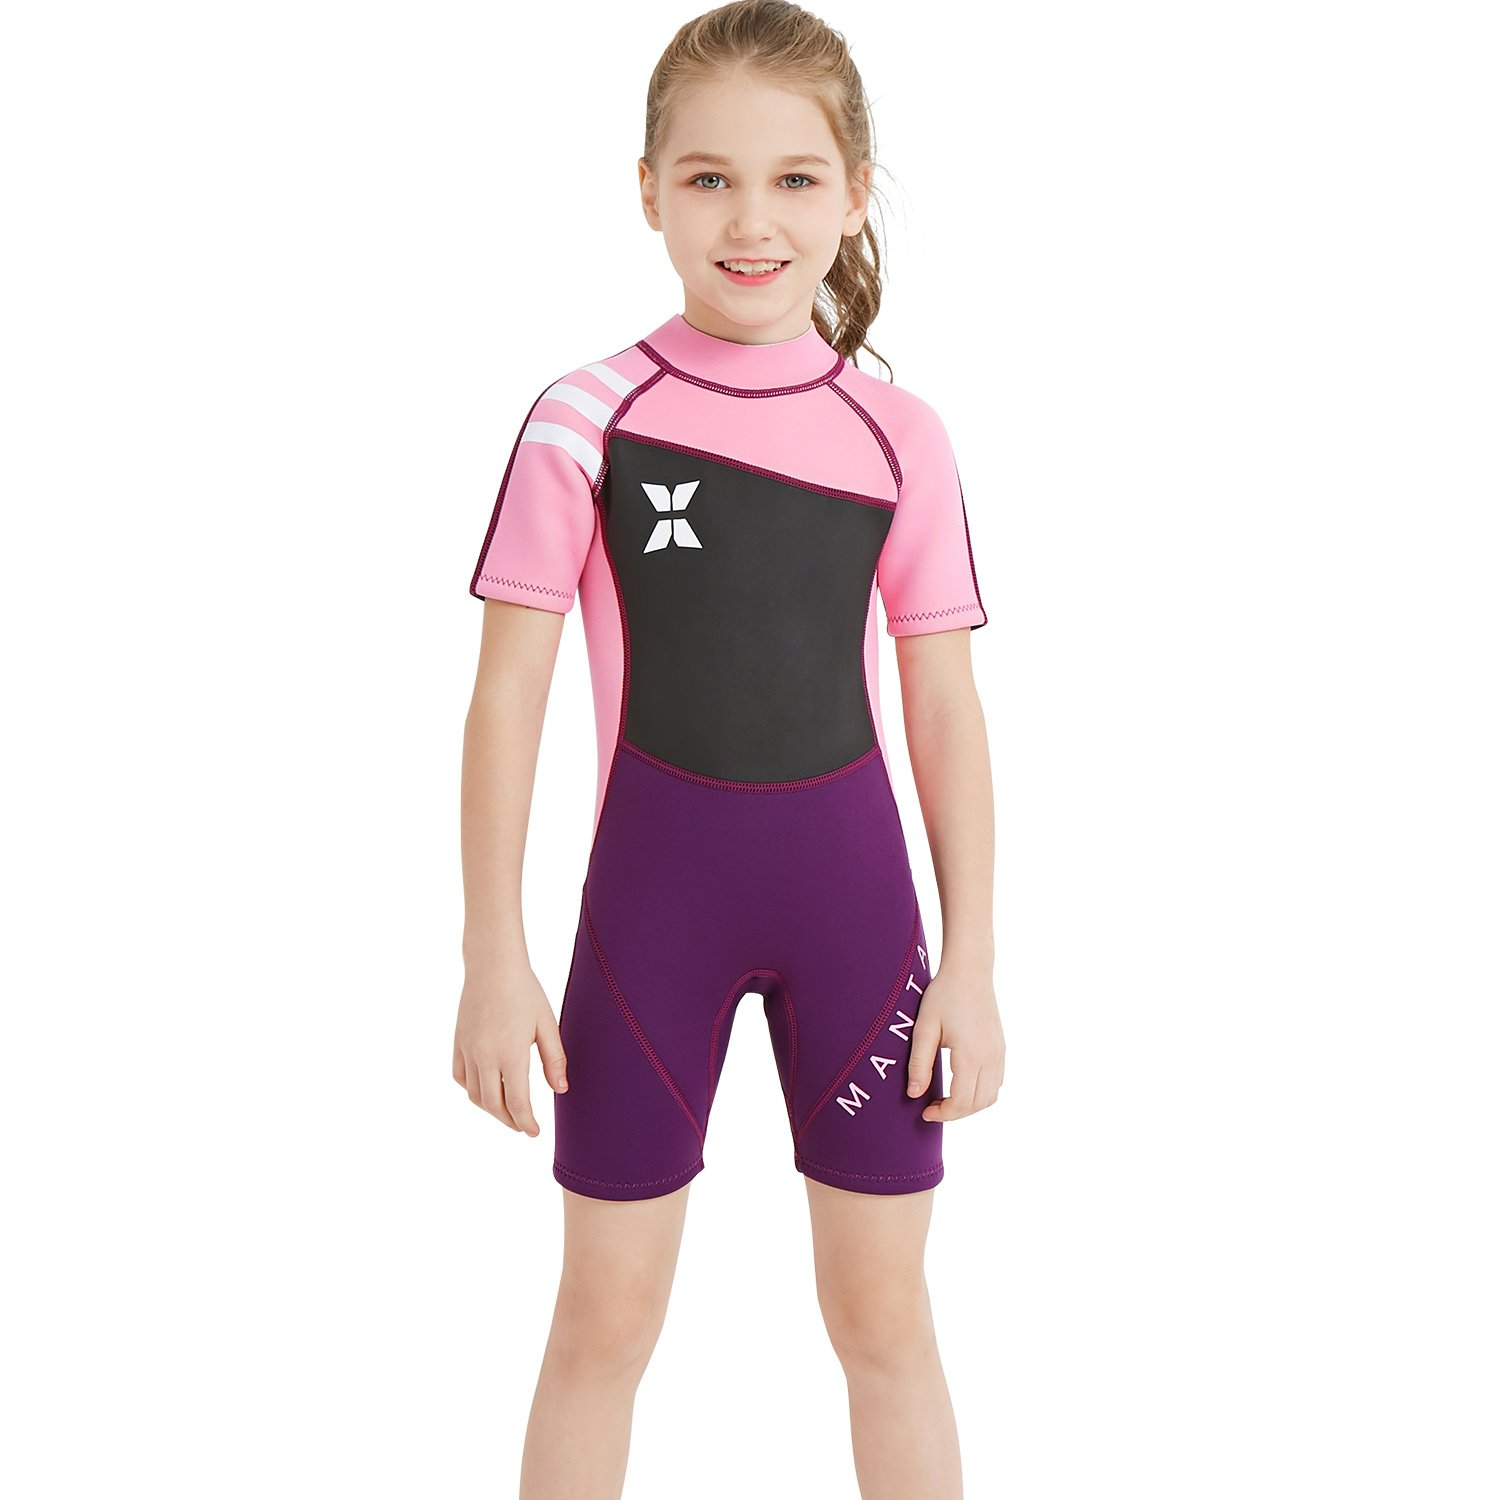 Child Swimming Shirt, Kids Wetsuit Neoprene Shorty Suit, Girls One Piece Fishing Suit, 2mm Thermal Swimsuit for Children Scuba Diving, Surfing, Paddling, Swimming, Pink L Size